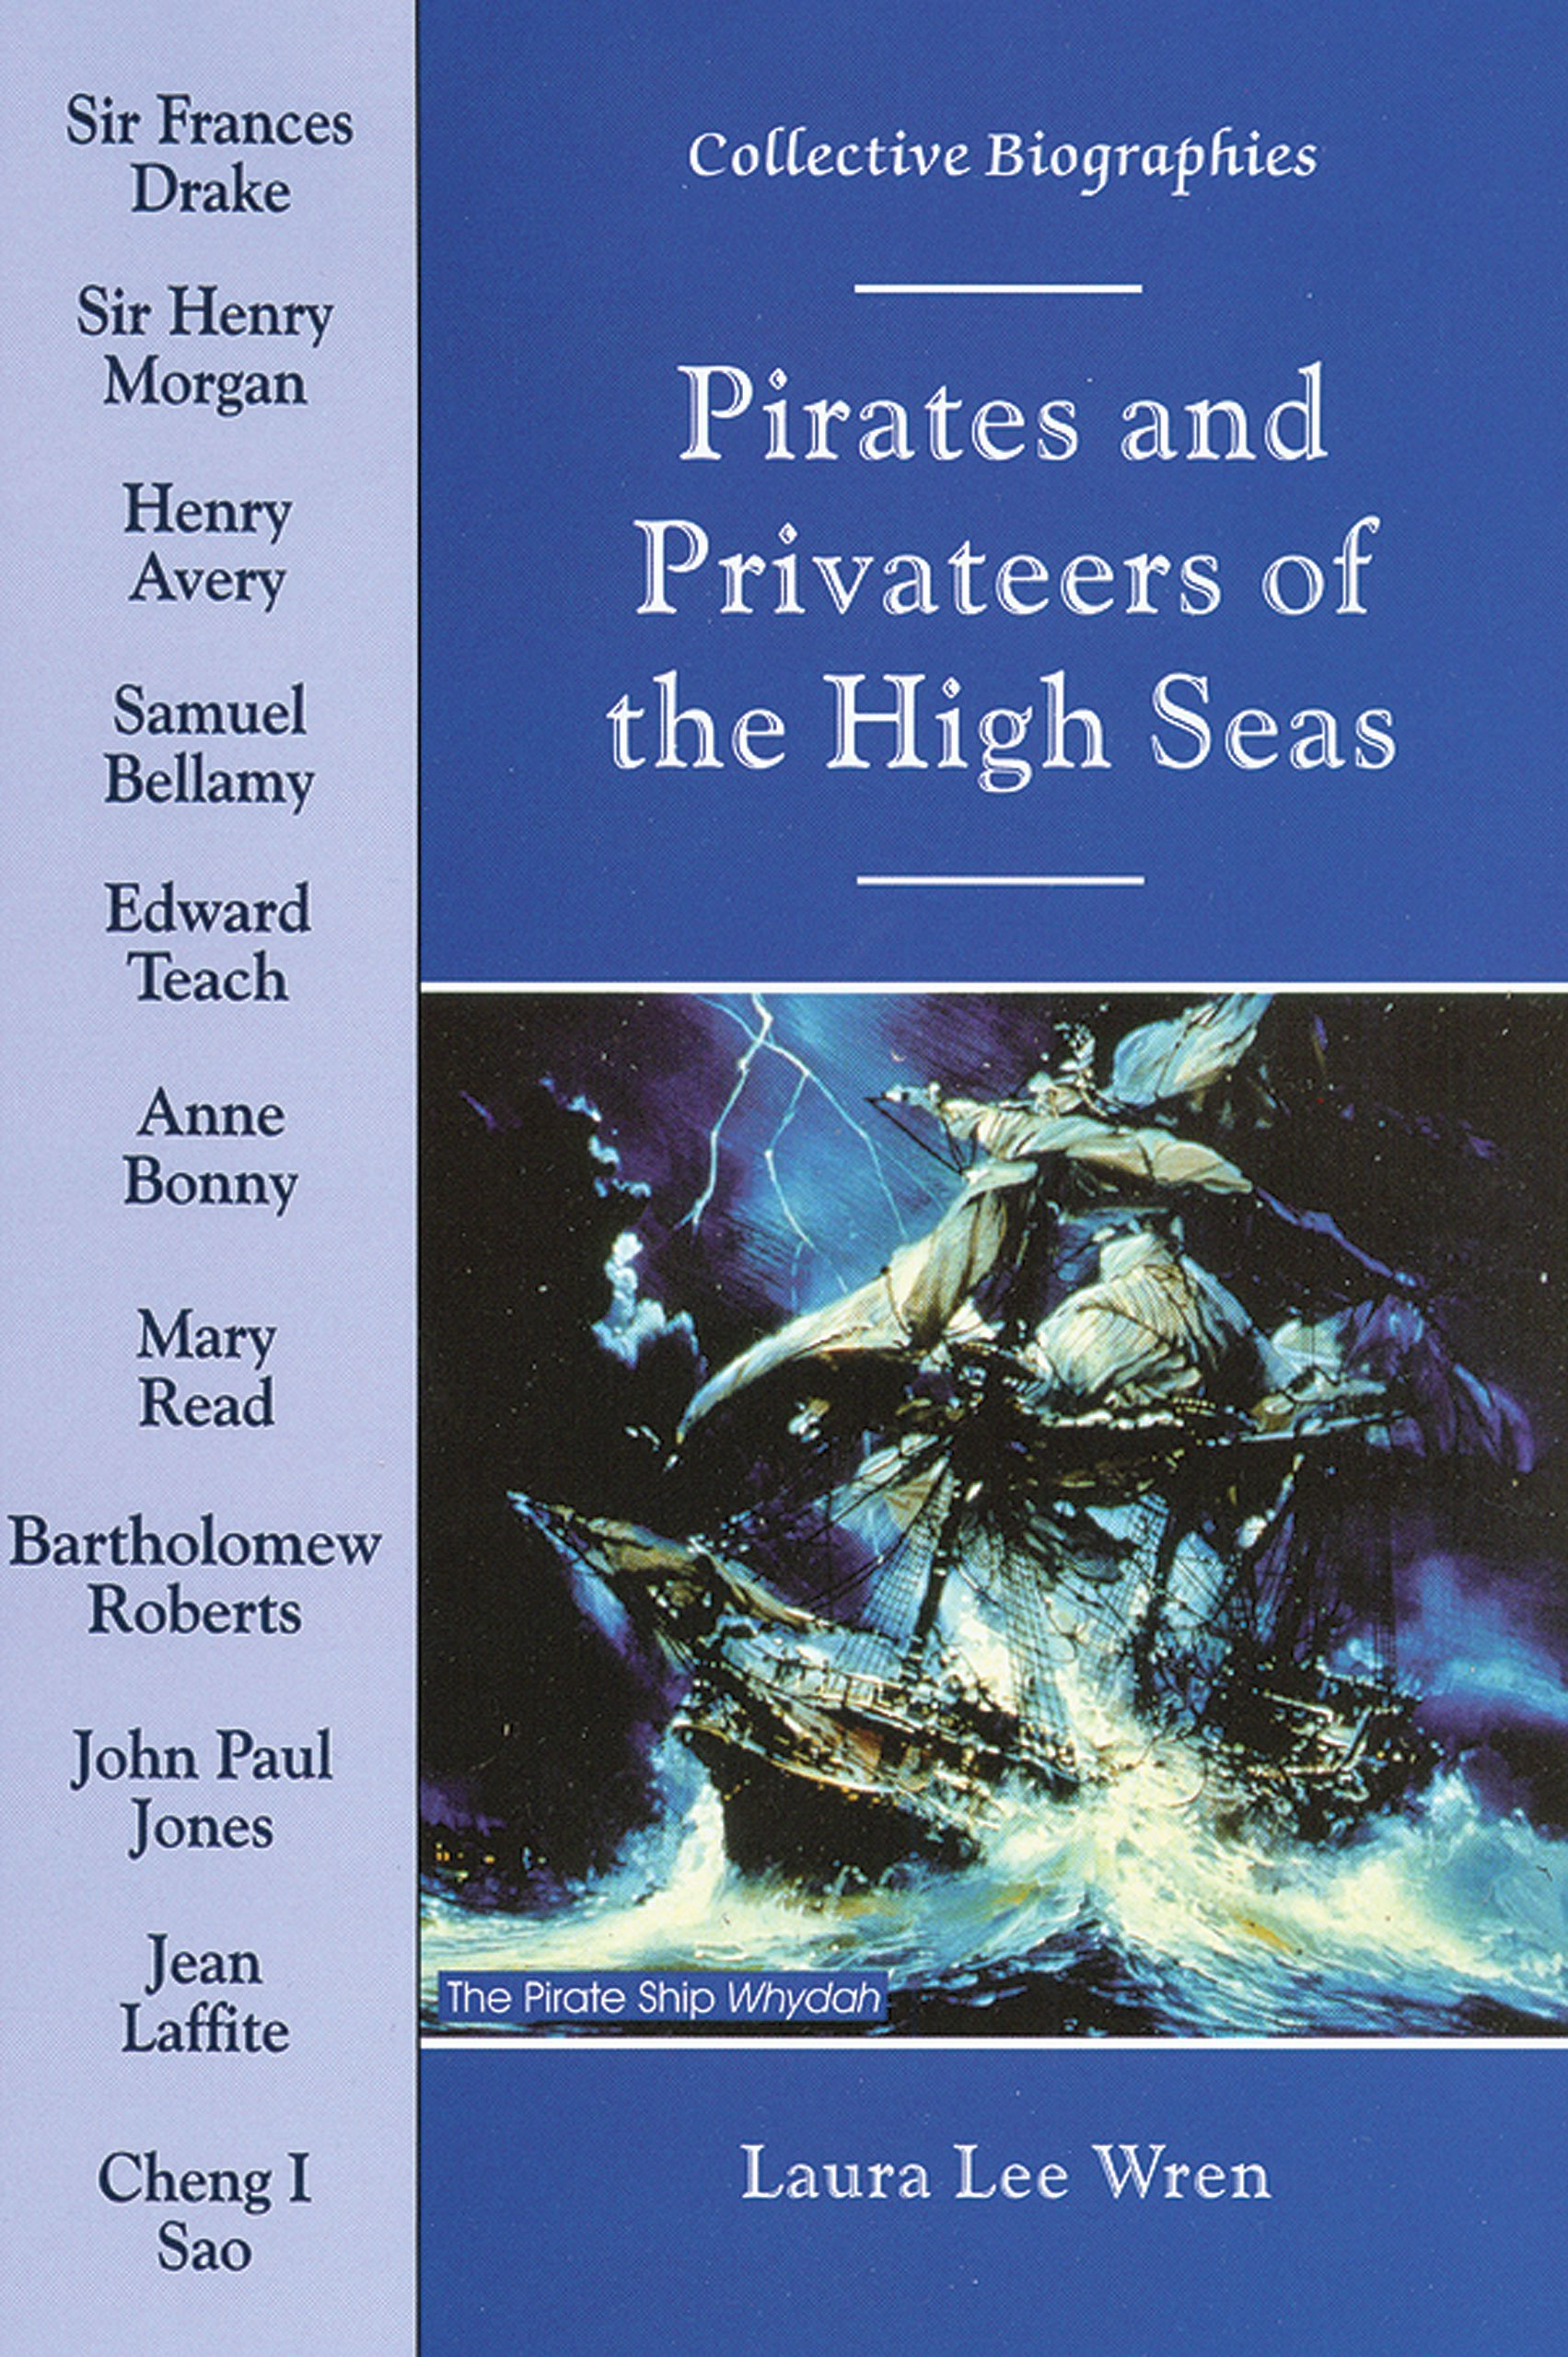 Download Pirates and Privateers of the High Seas (Collective Biographies) pdf